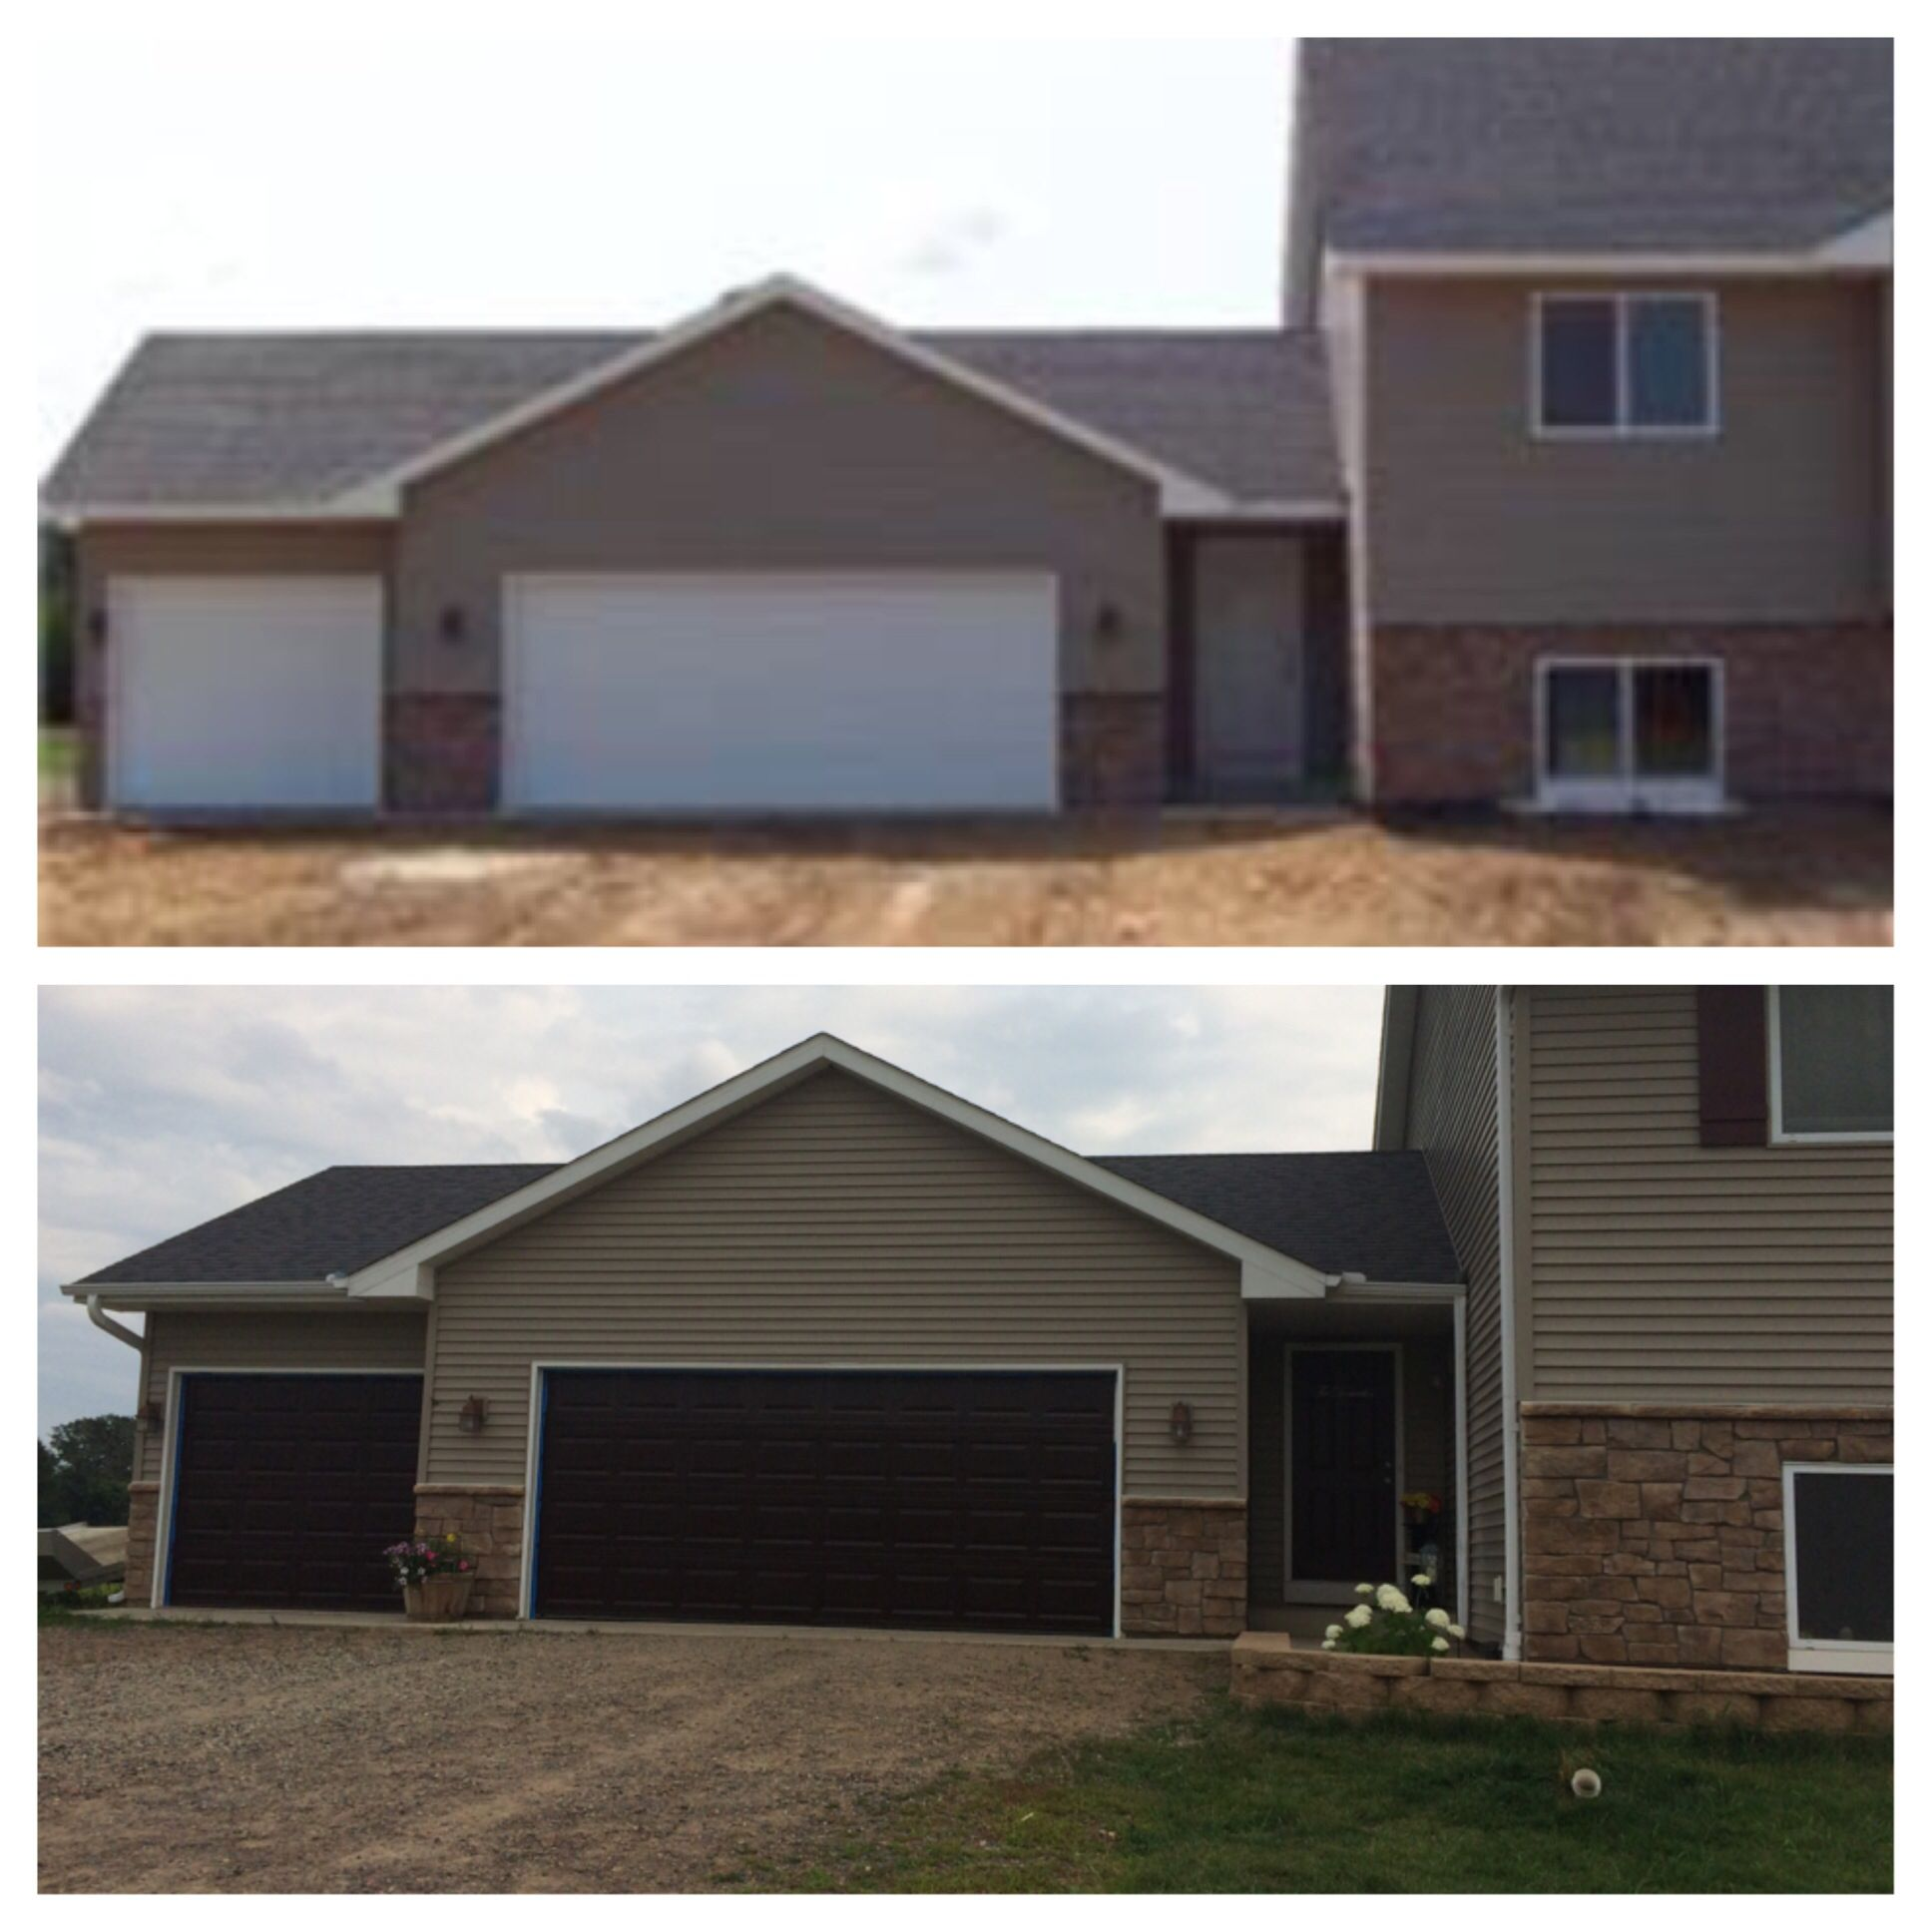 Before And After Garage Doors Gel Stain Homedepot Garage Door Styles Garage Door Design Garage Door Types